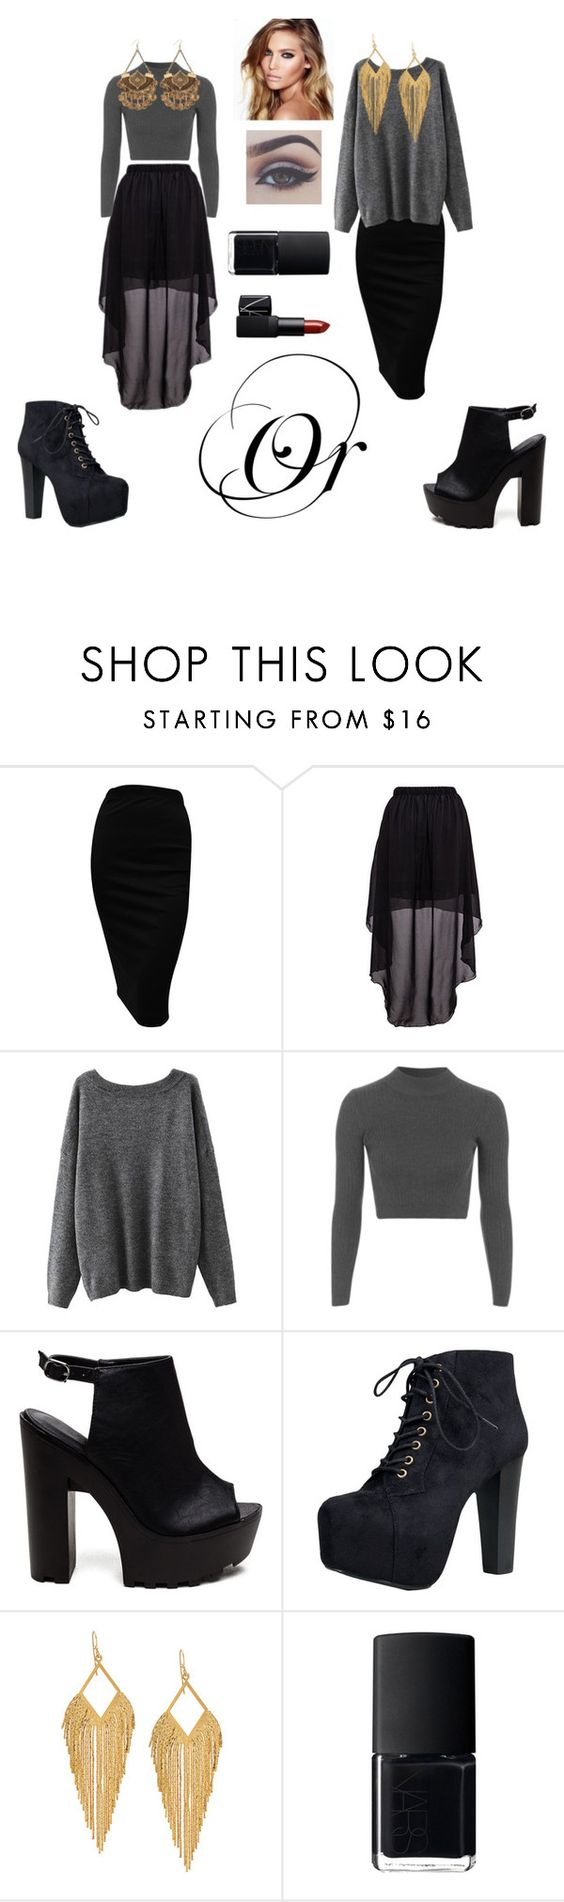 """#124"" by geekyfashion1 ❤ liked on Polyvore featuring mode, Topshop, Speed Limit 98, Panacea, Charlotte Tilbury et NARS Cosmetics"